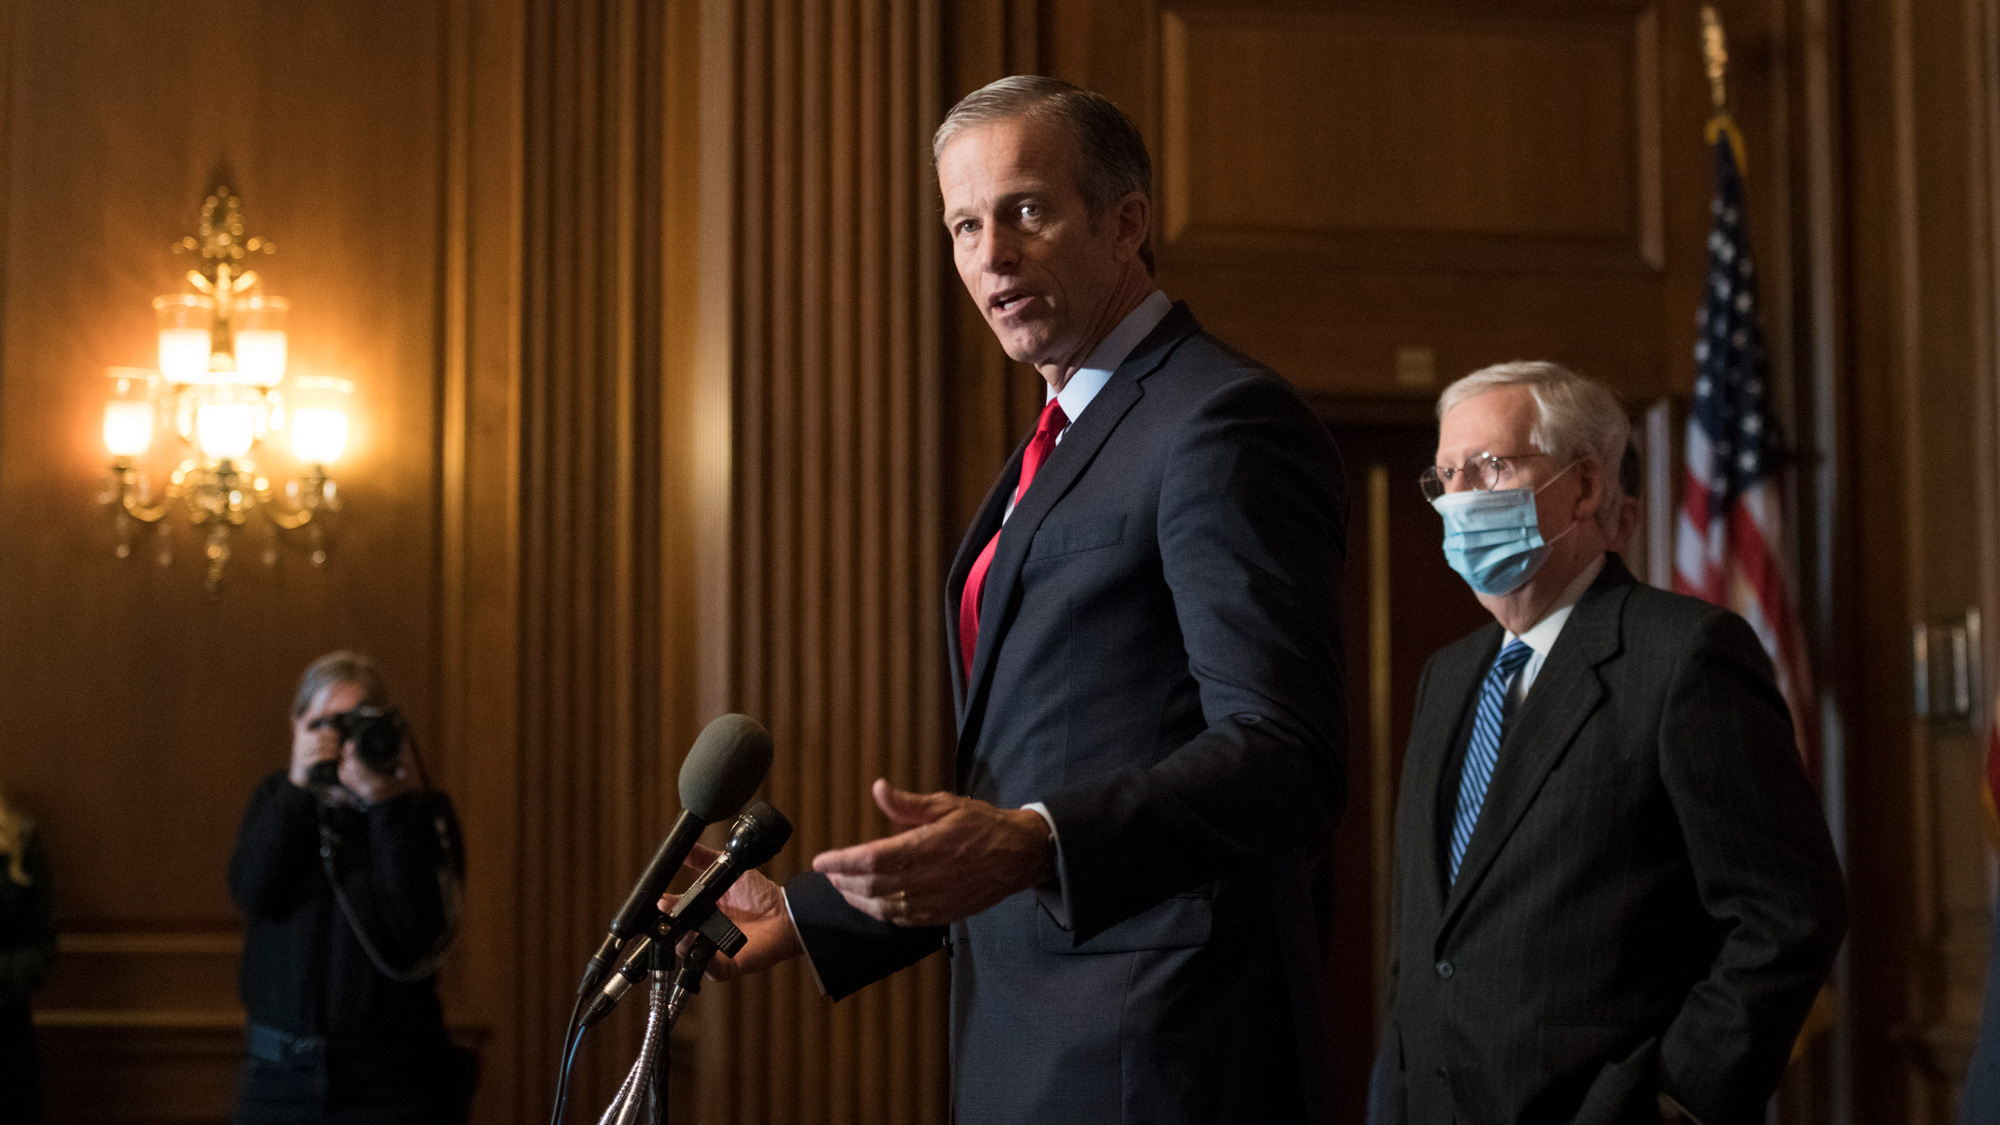 Senate Majority Whip John Thune speaks during a news conference at the U.S. Capitol on December 15 in Washington, DC.